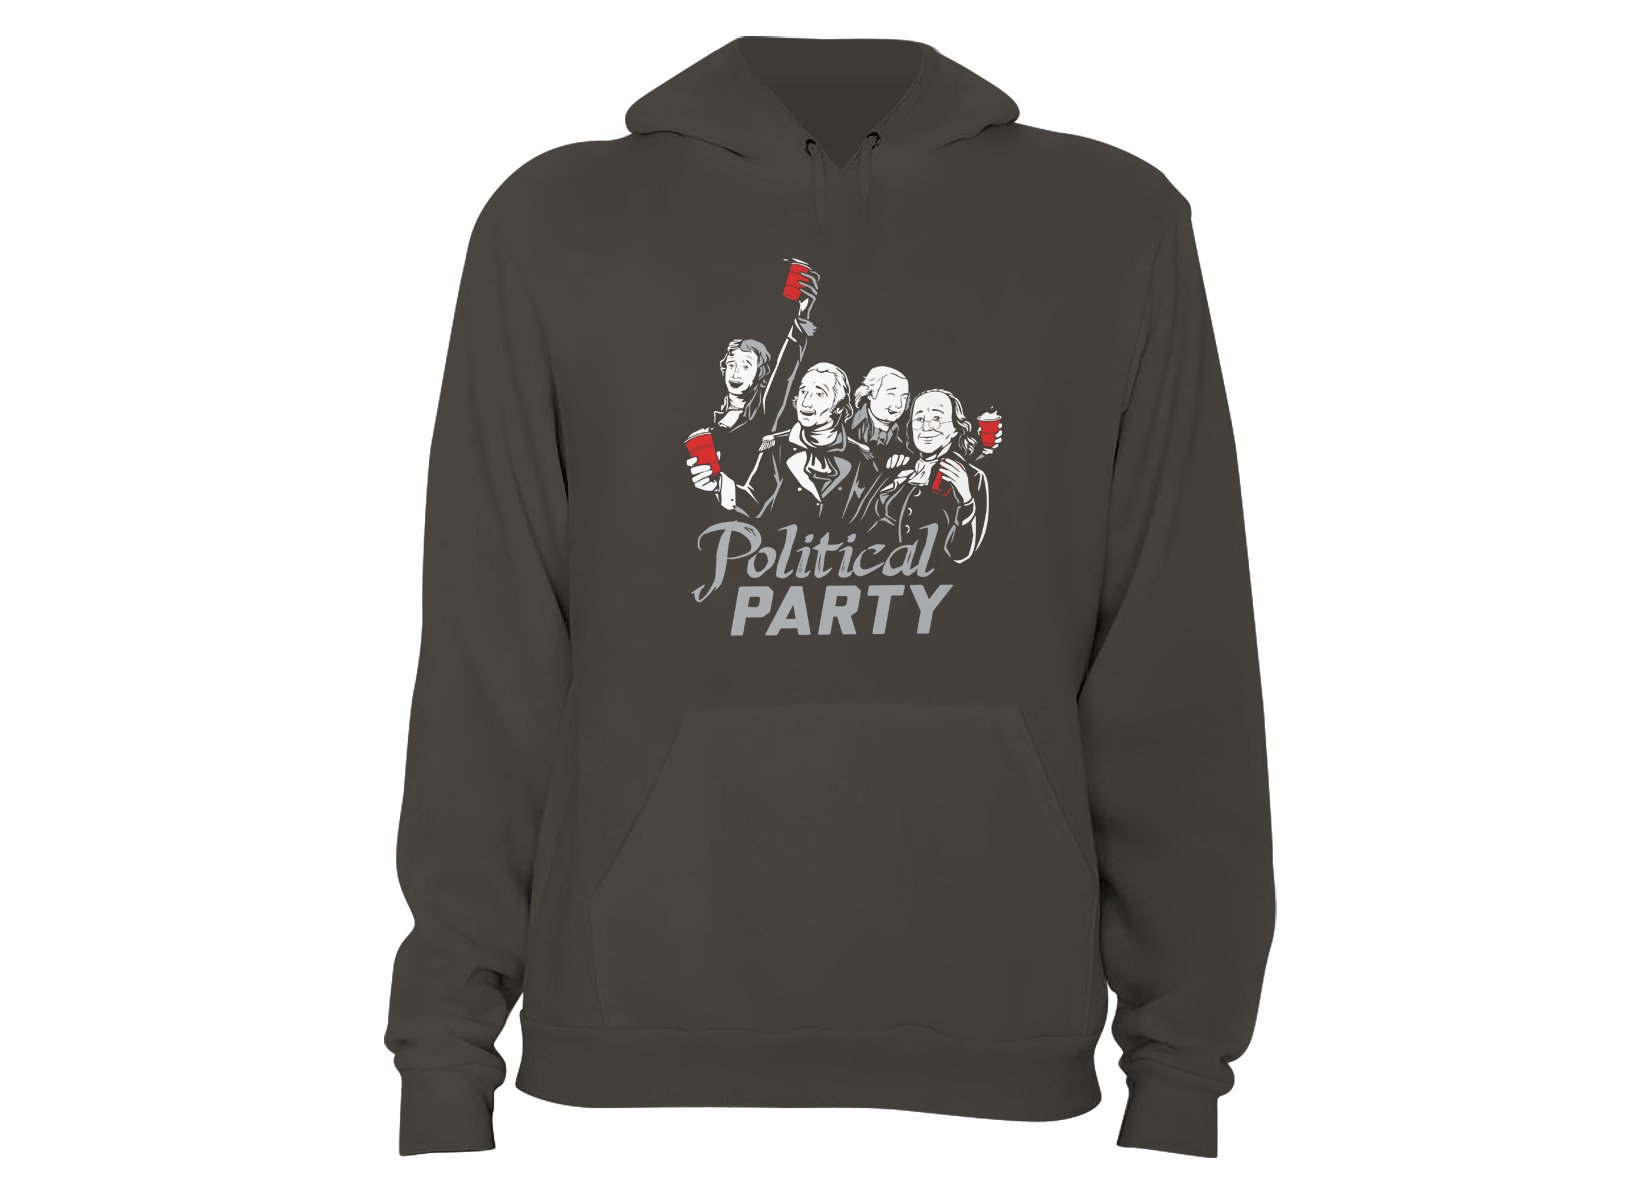 Political Party on Hoodie